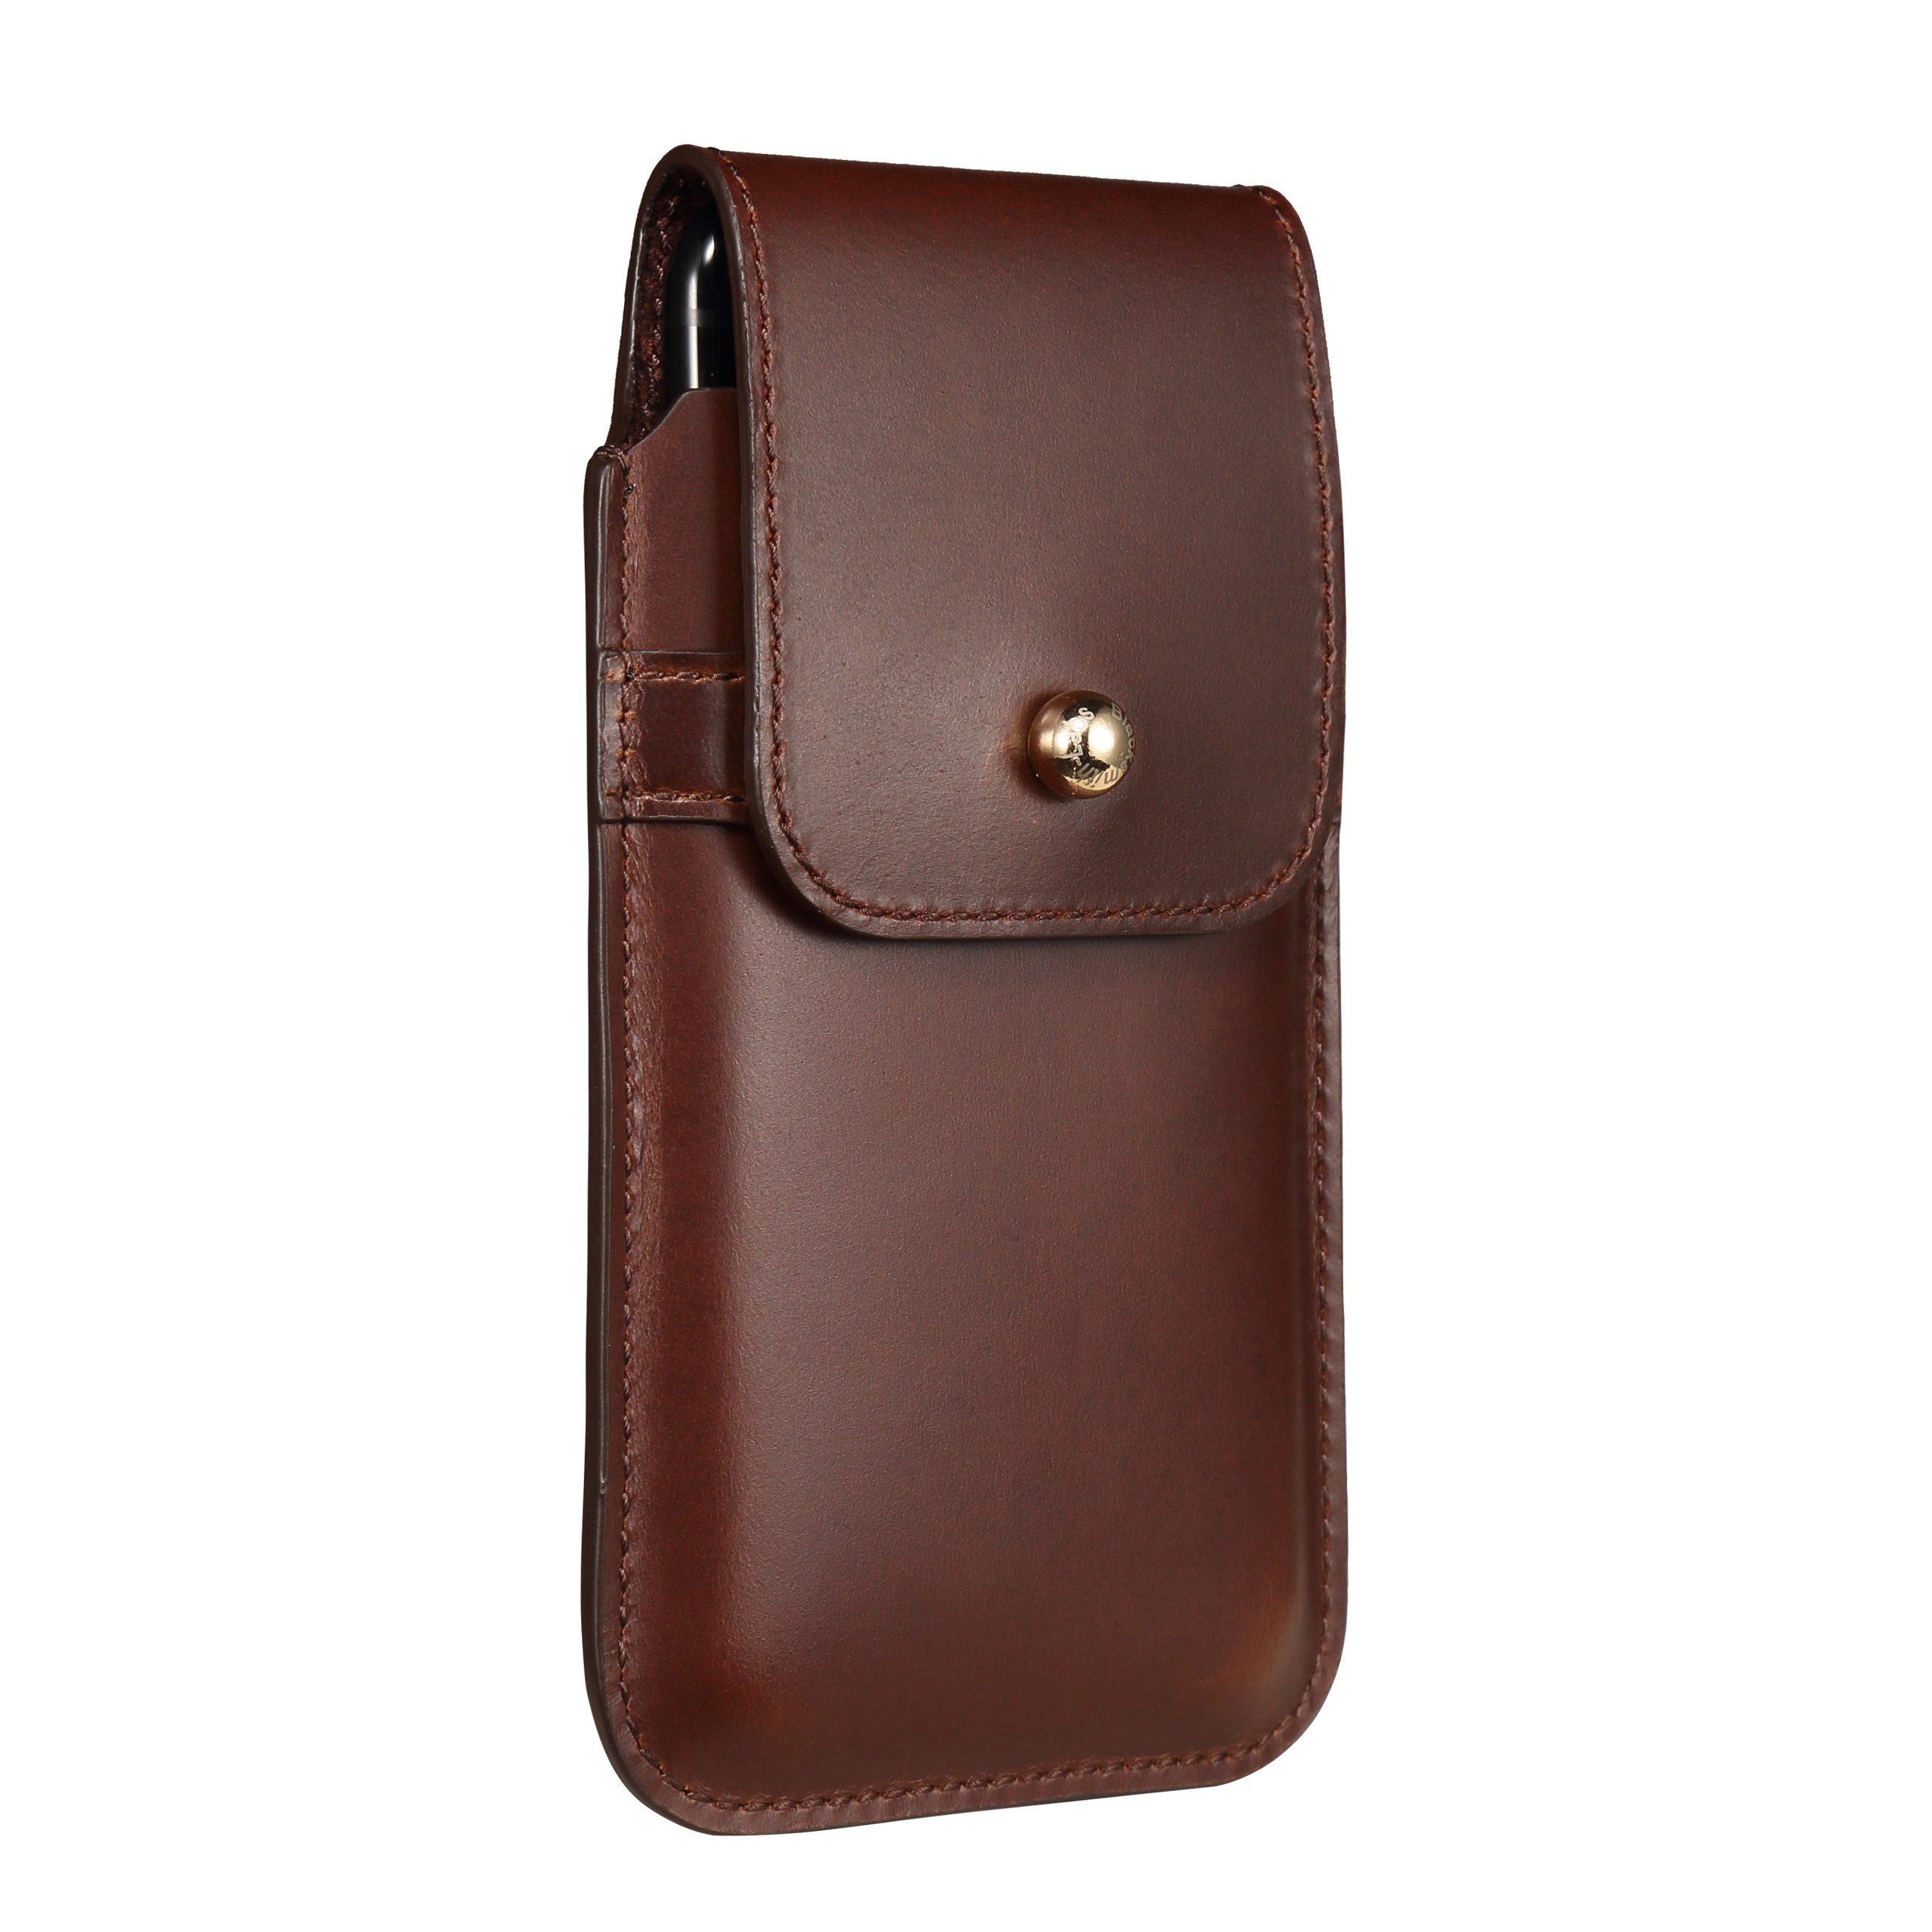 Blacksmith-Labs Barrett 2017 Premium Genuine Leather Swivel Belt Clip Holster for Apple iPhone 6/6s/7 (4.7 inch screen) for use with no cases or covers - Brown Cowhide/Gold Belt Clip